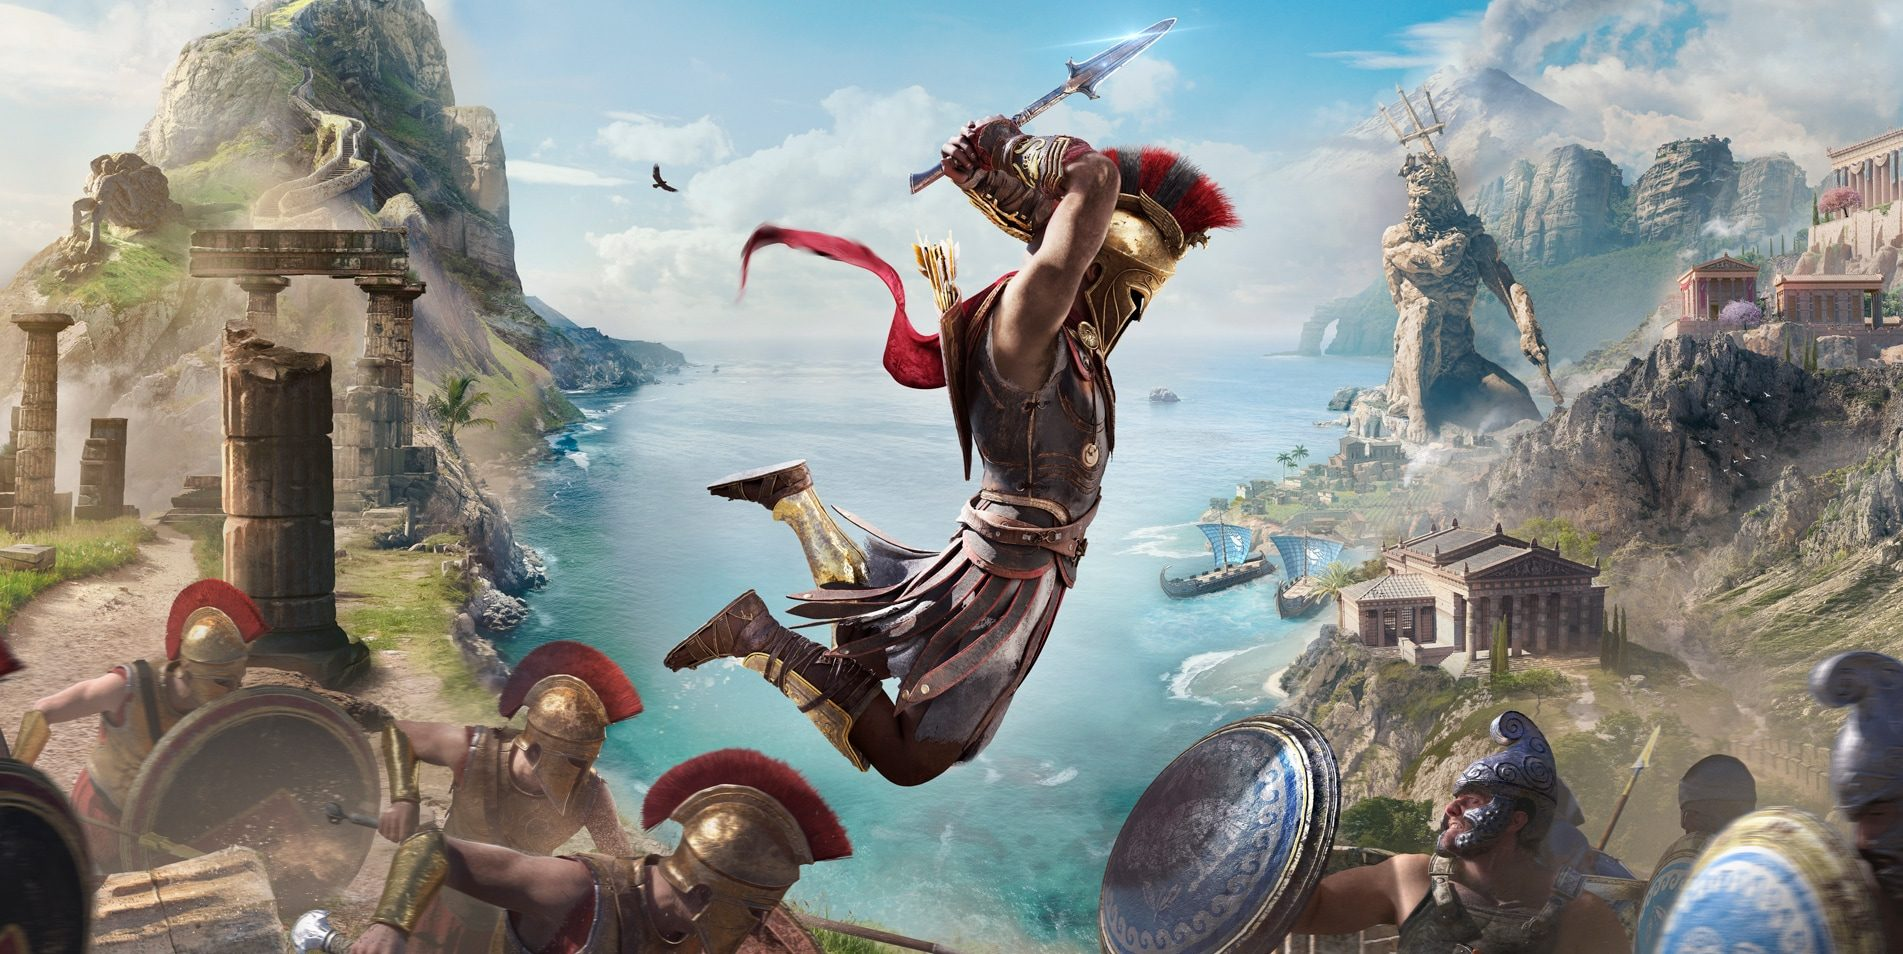 Ubisoft Launches Story Creator Mode for Assassin's Creed Odyssey During E3.